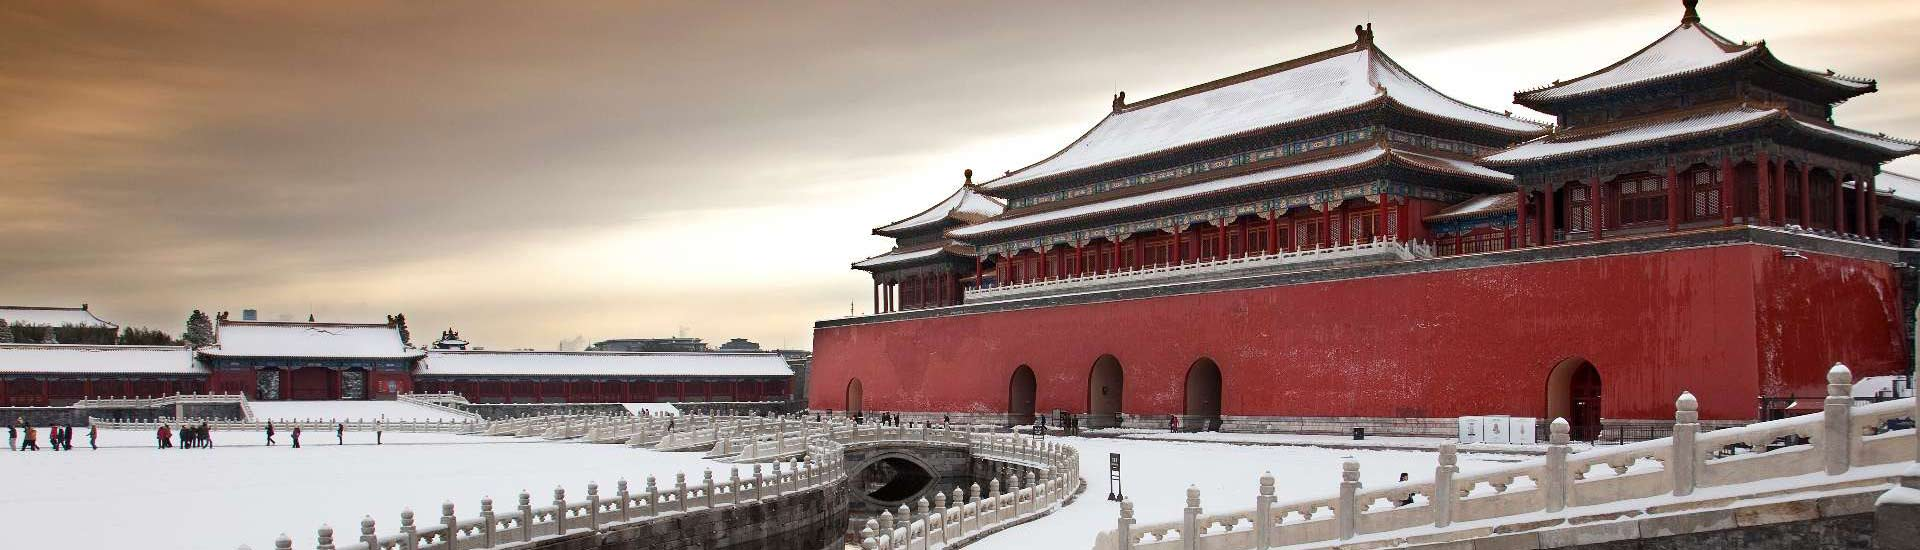 8 Days Group Tour (Beijing -Xian -Shanghai) by Train